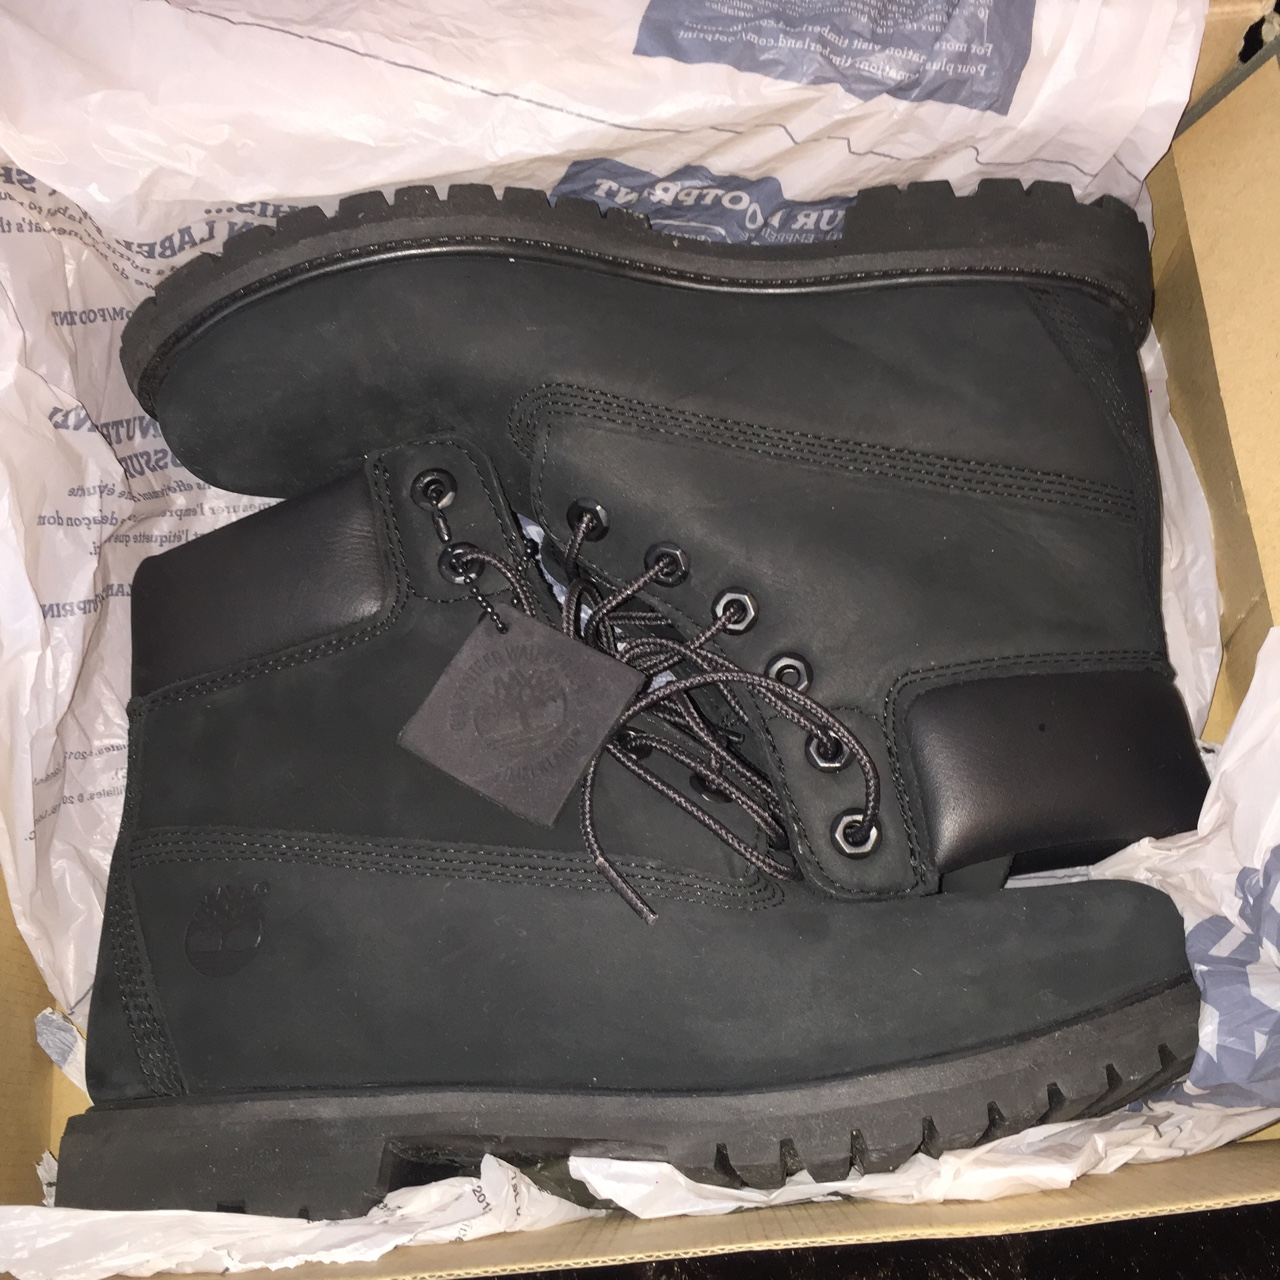 BLACK TIMBERLAND BOOTS GOOD AS NEW WORN ONCE BUT Depop